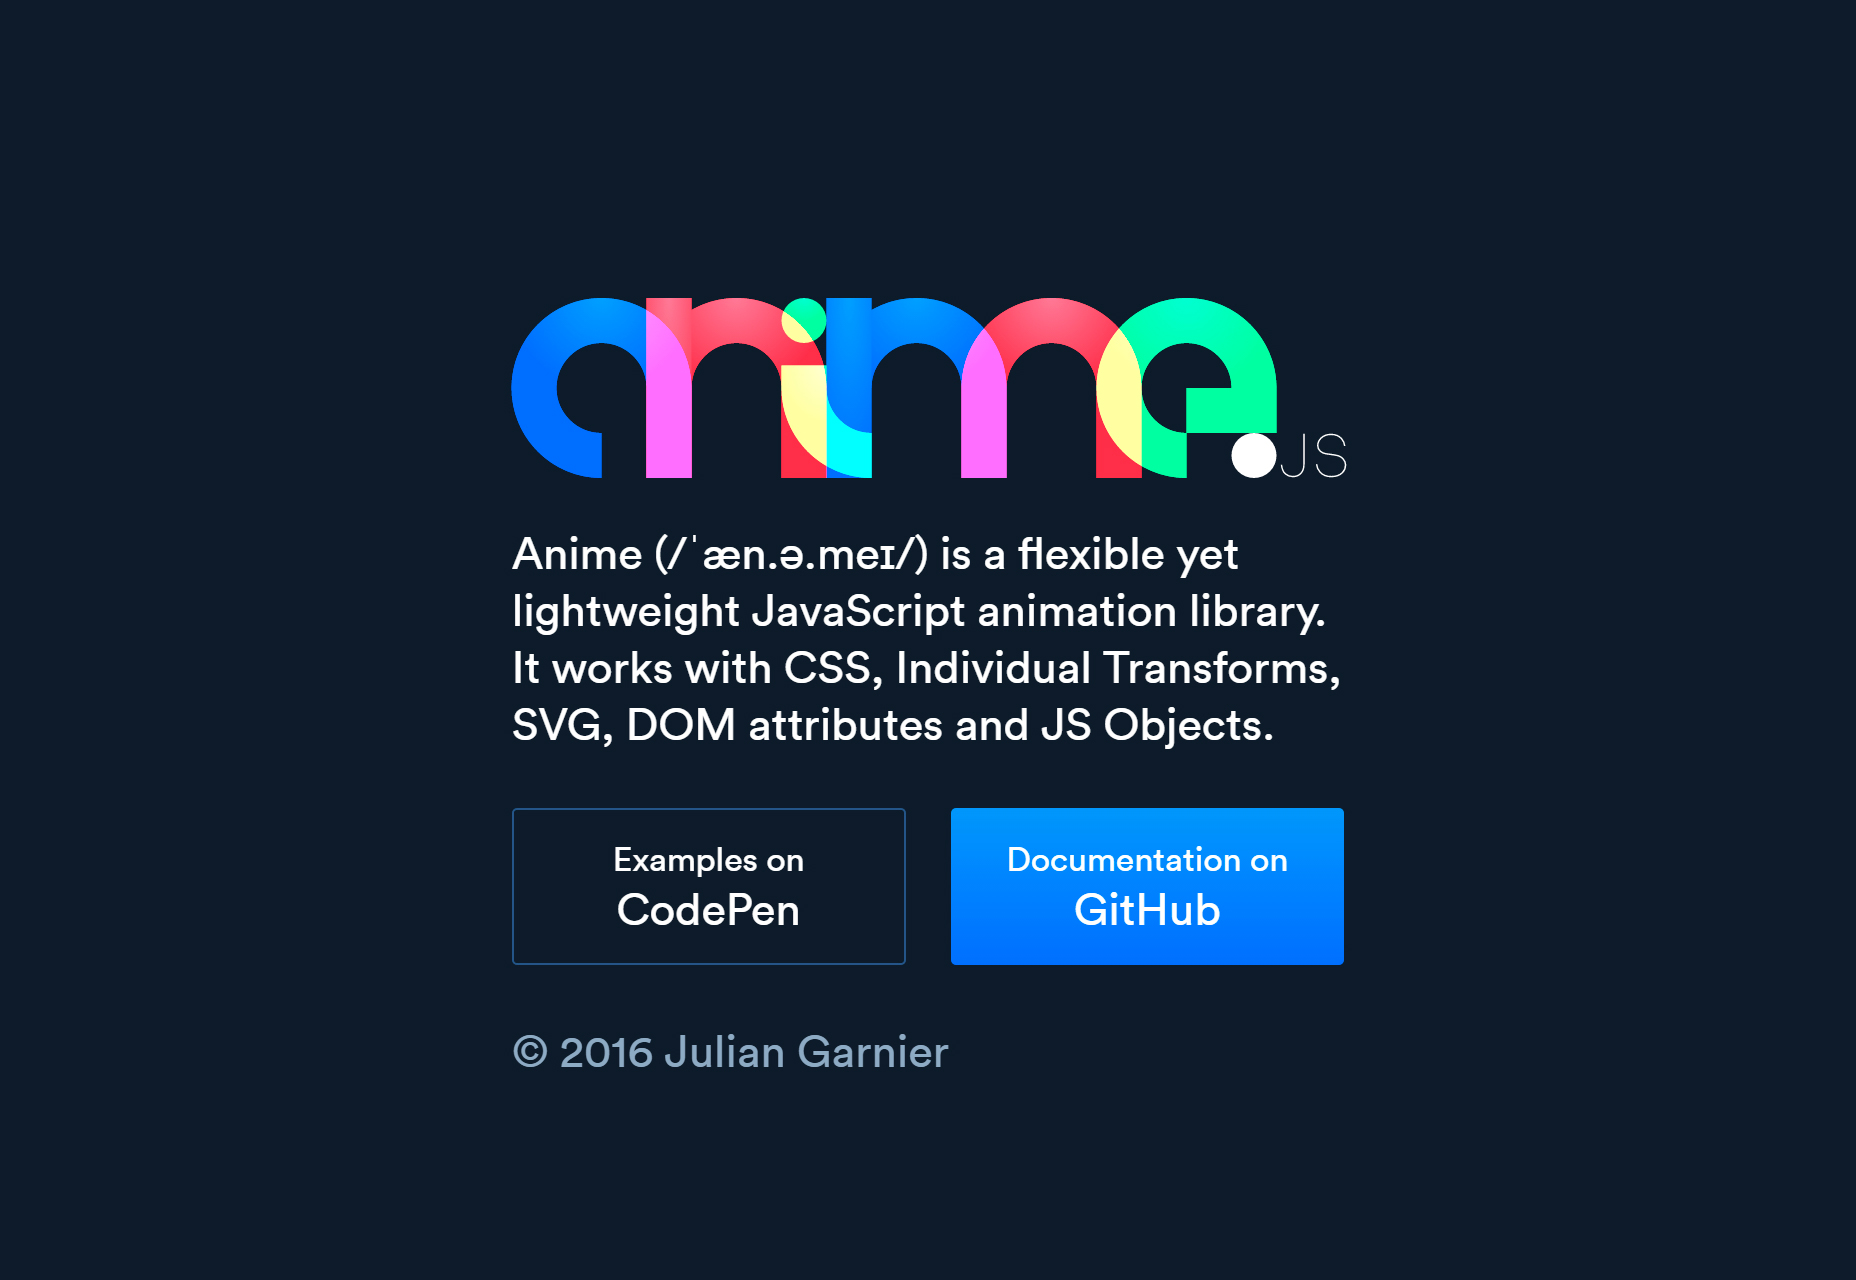 Anime.js: Powerful JavaScript Animation Library